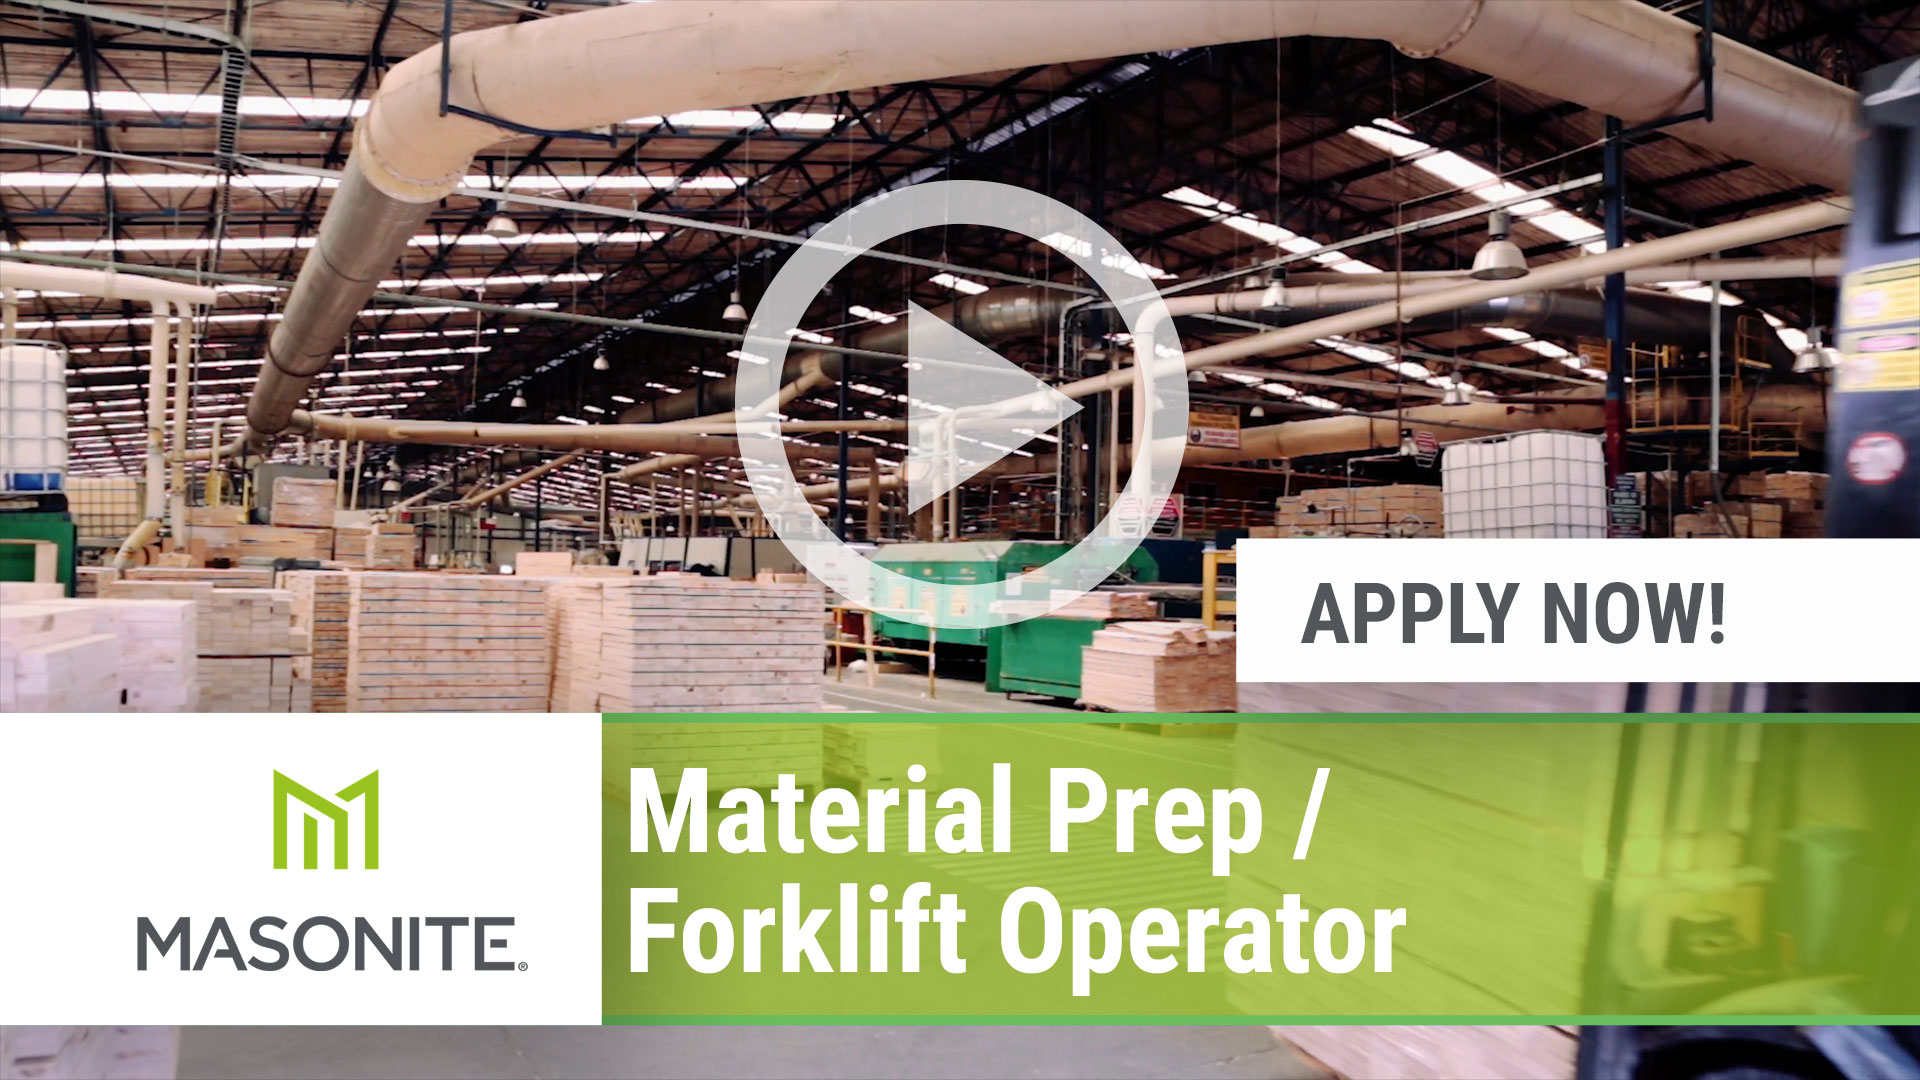 Watch our careers video for available job opening Material Prep _ Forklift Operator in Northumberland, PA, USA